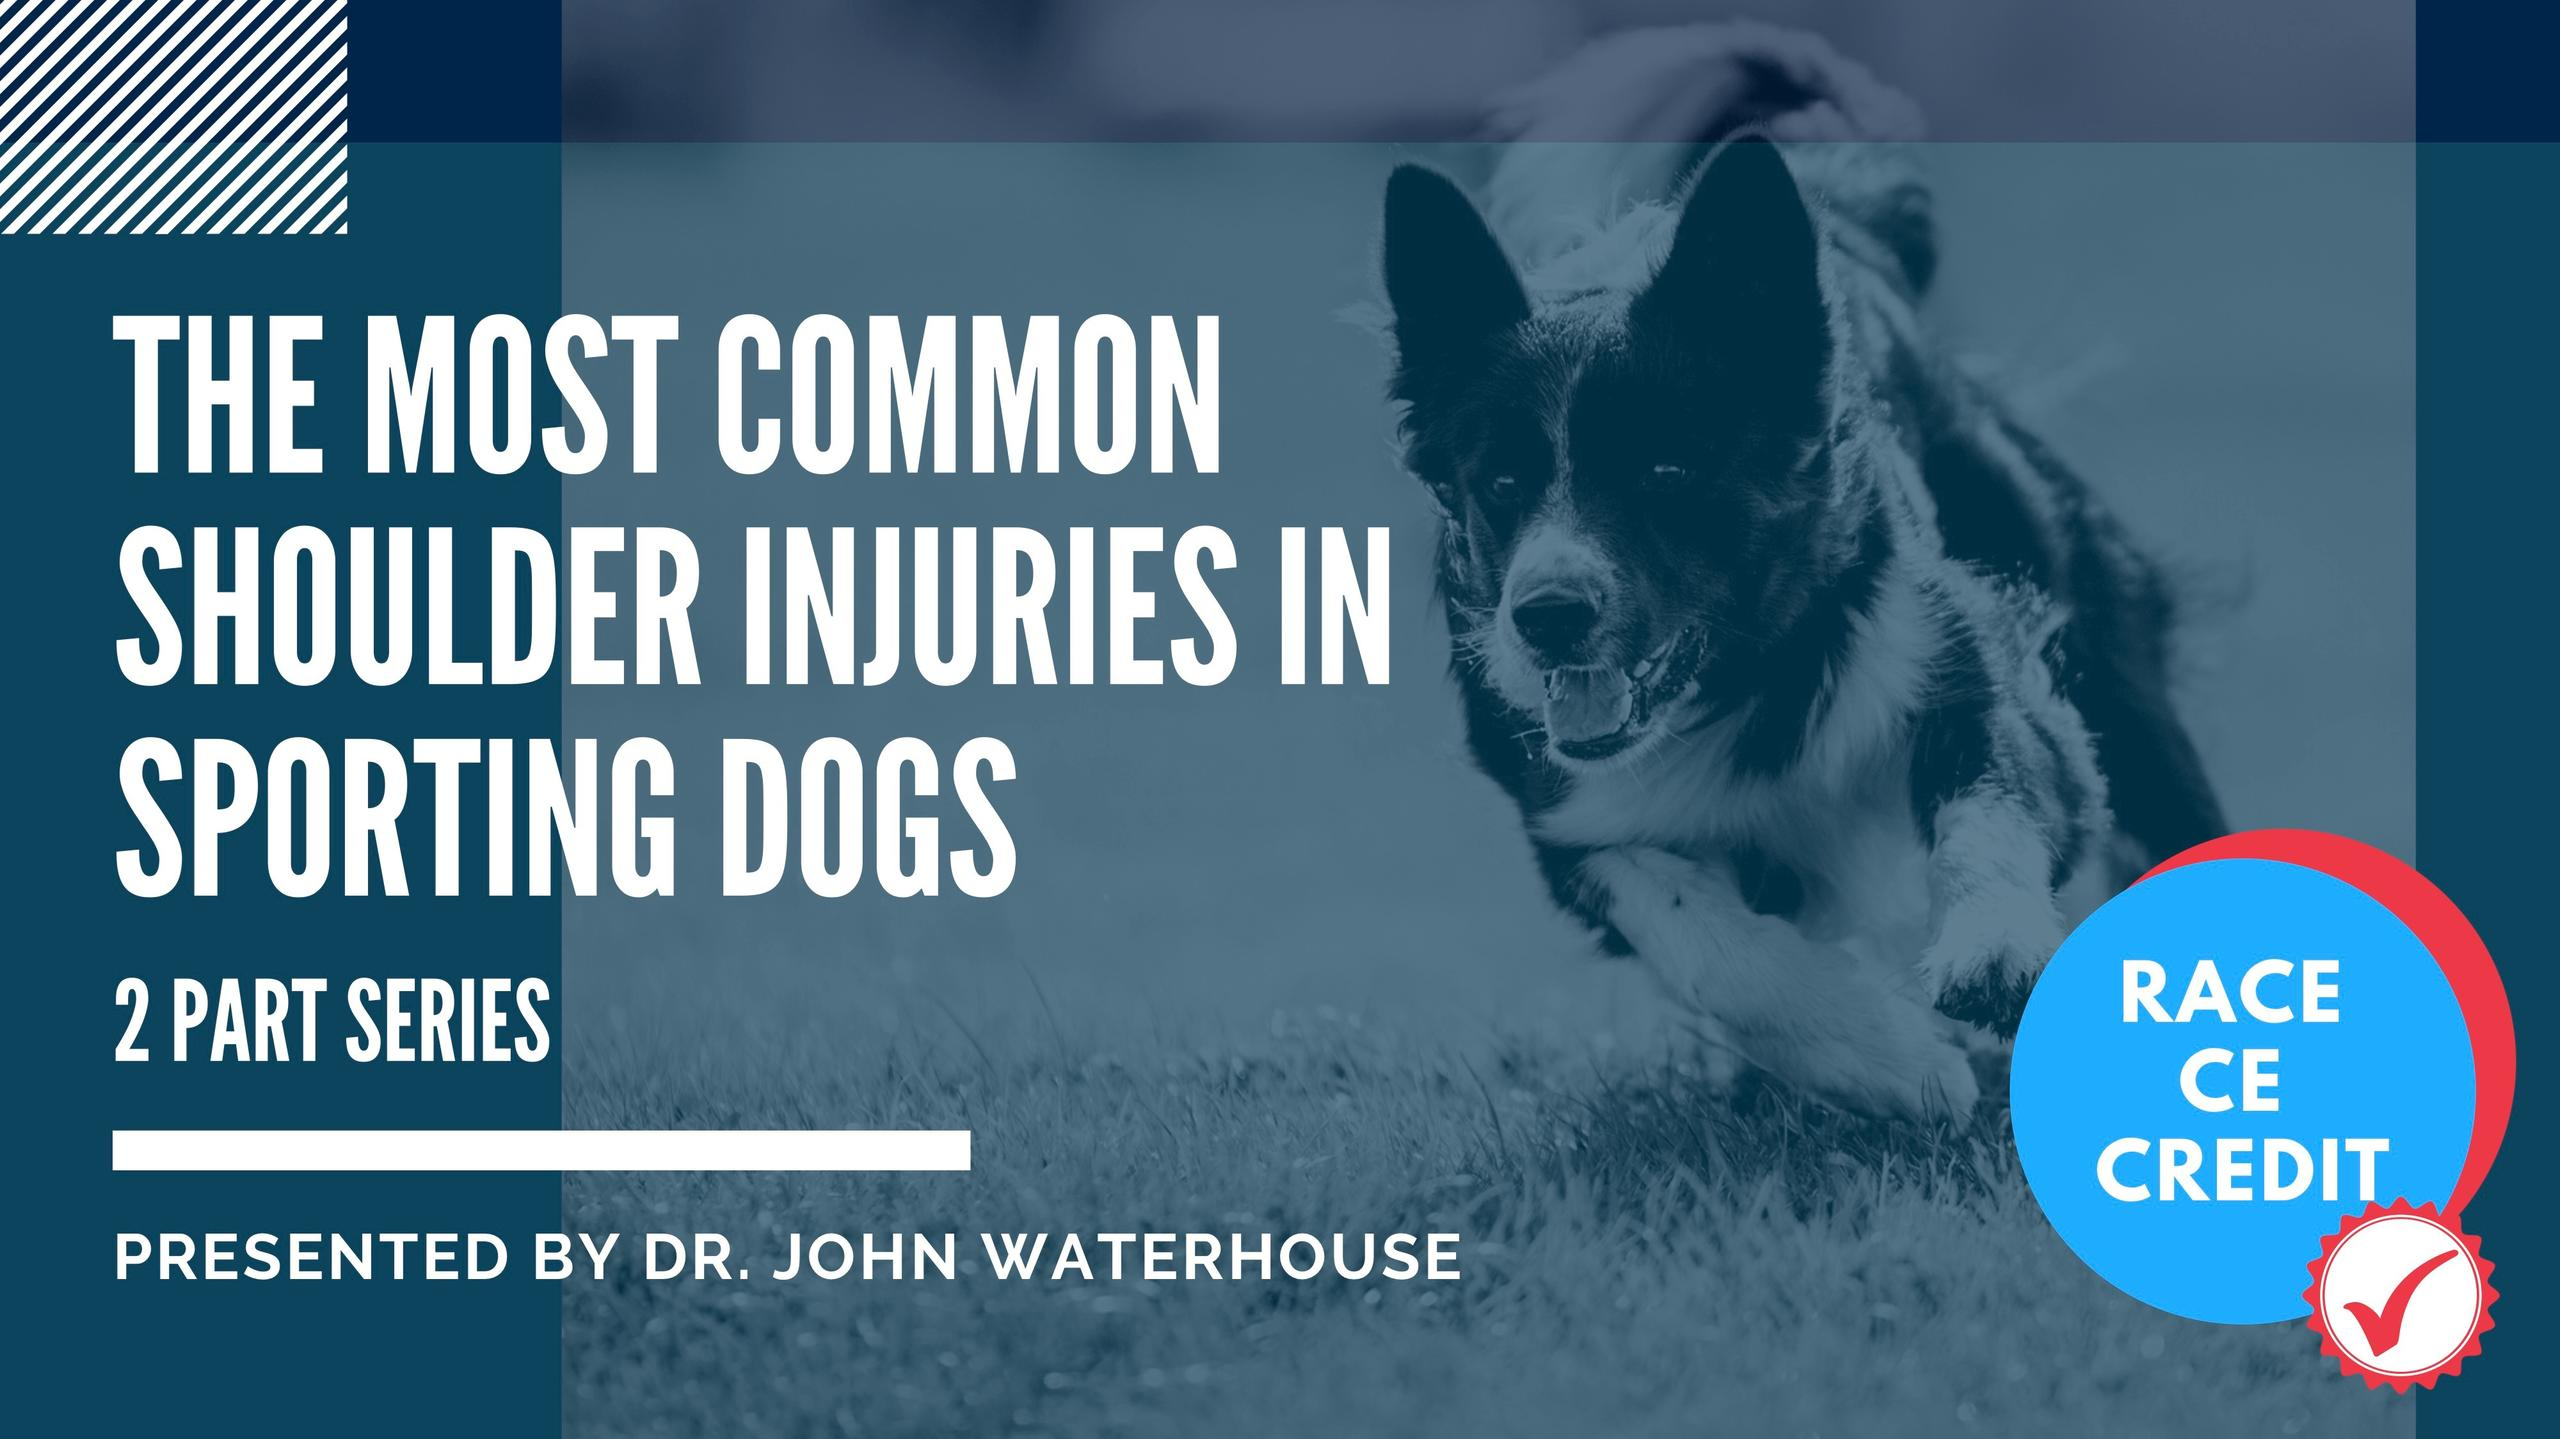 Most Common Sporting Injuries in Sporting Dogs